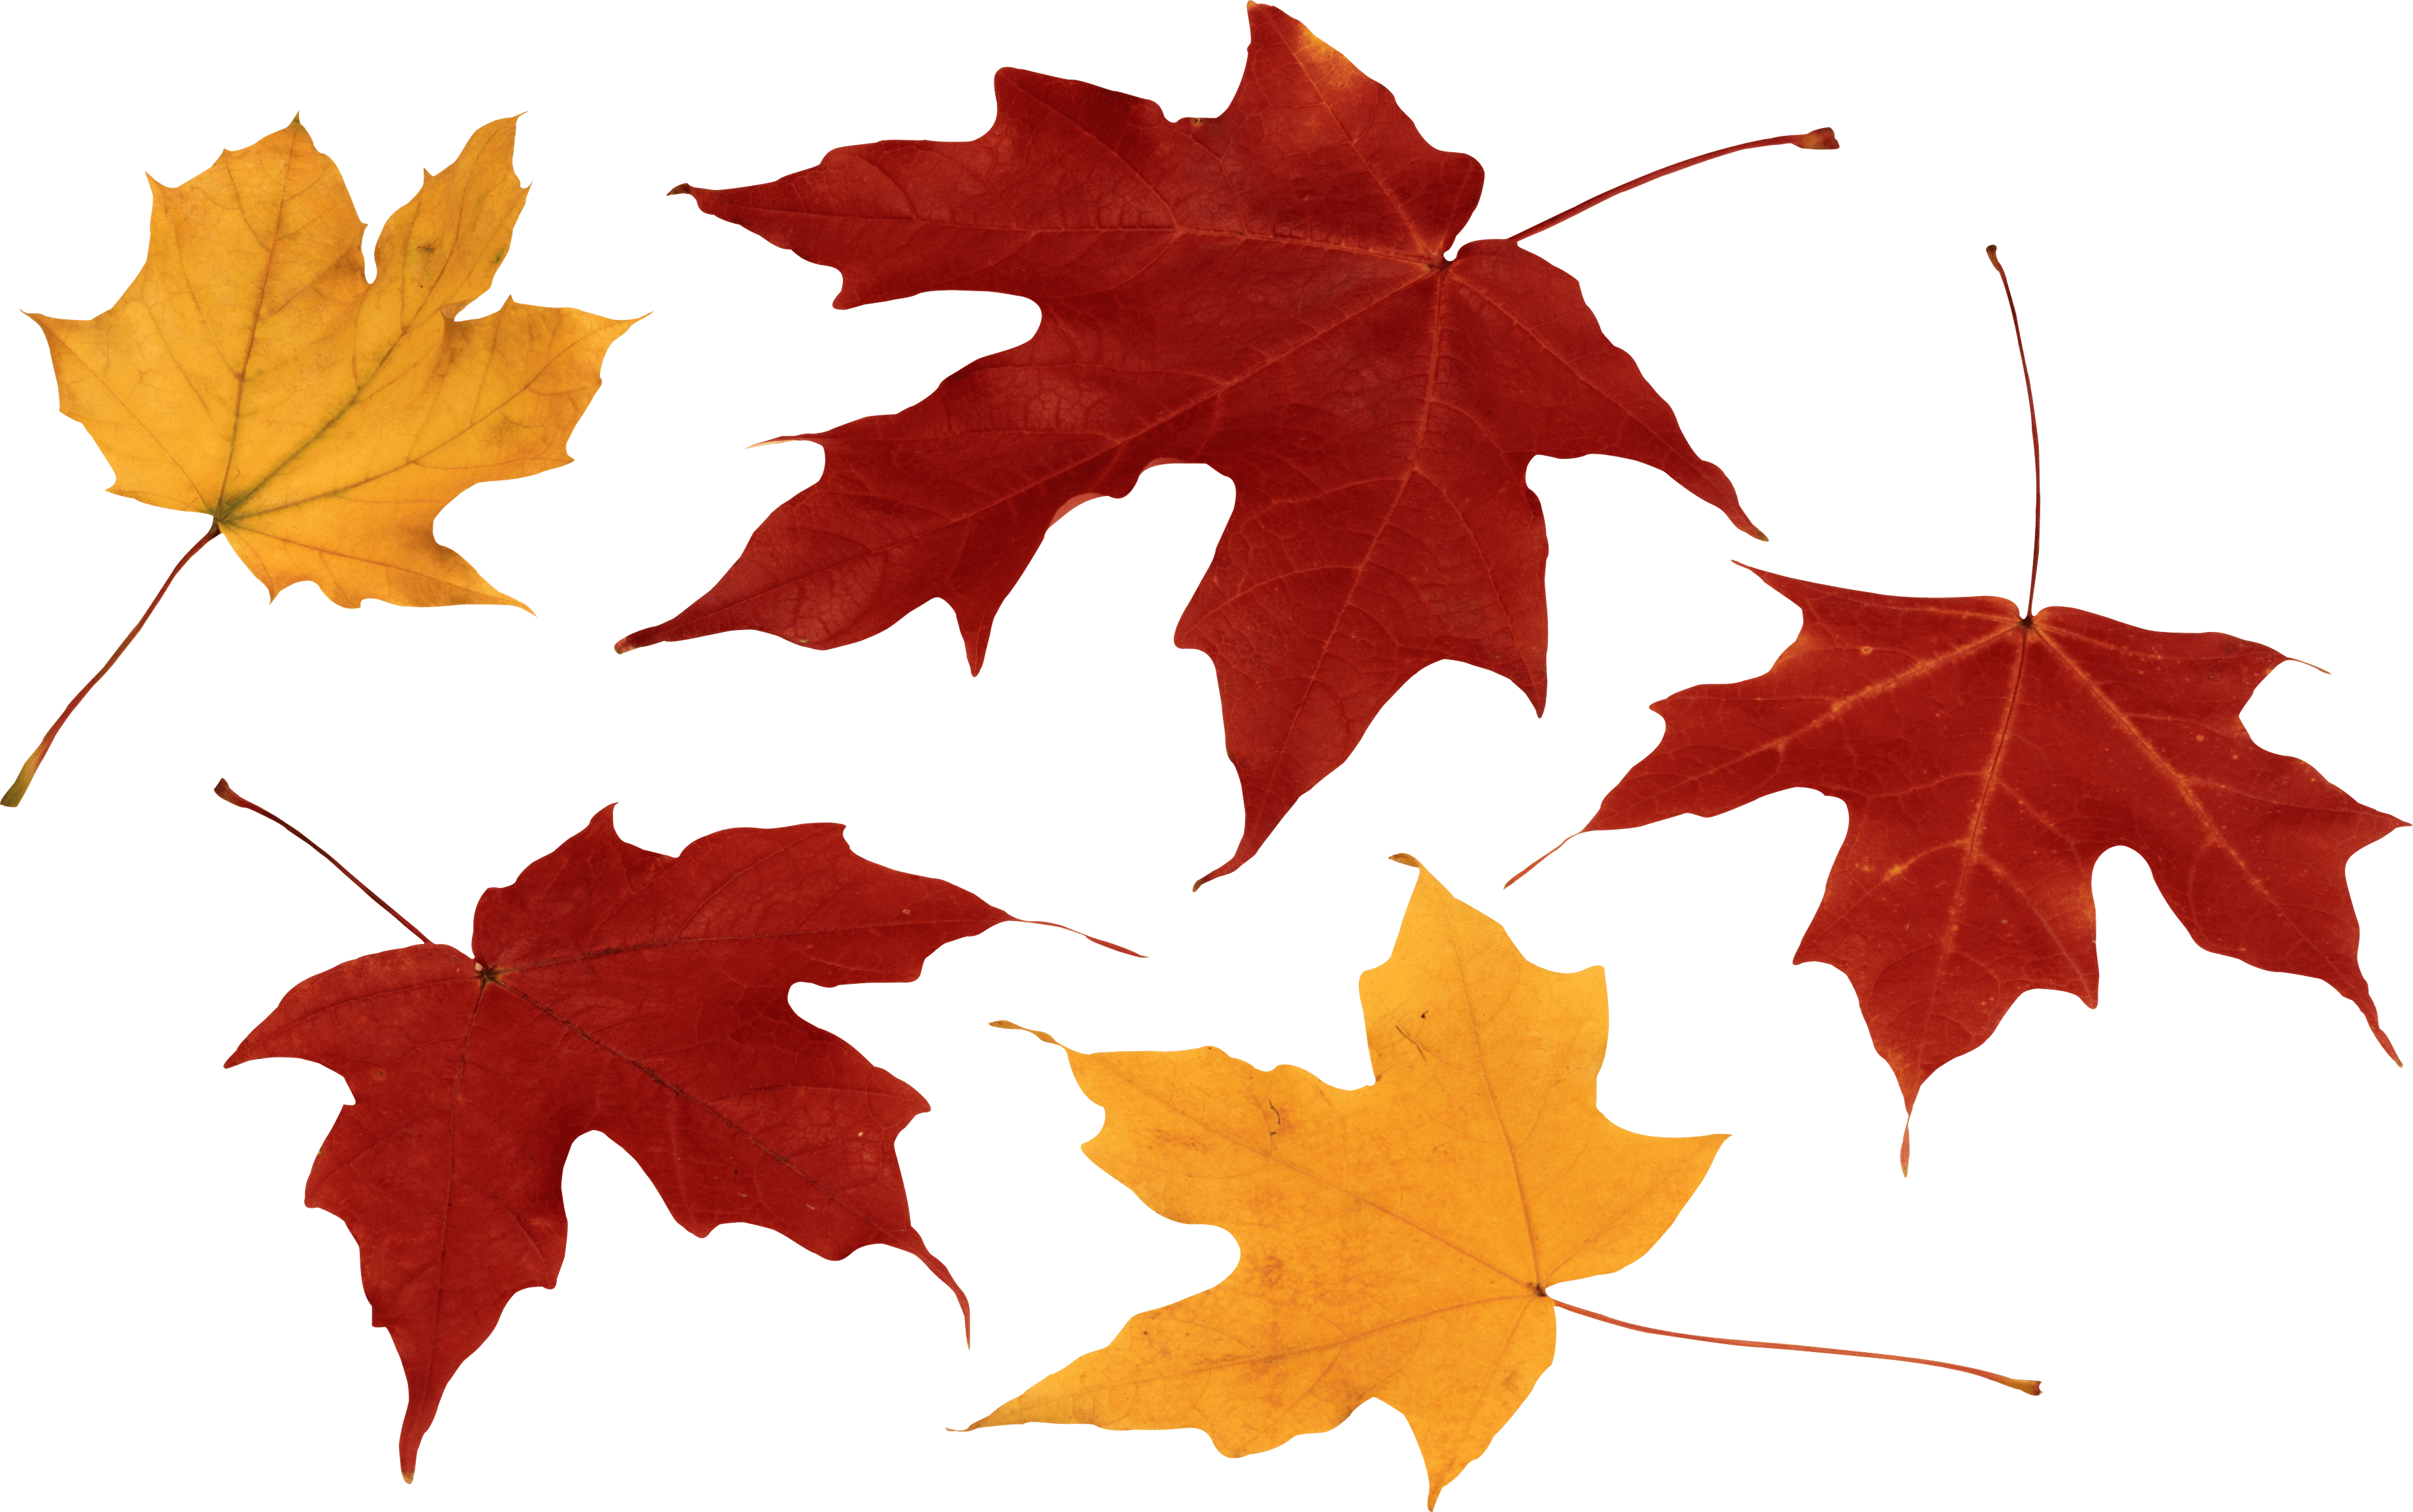 Autumn Png Leaf PNG Image - Autumn Leaves HD PNG